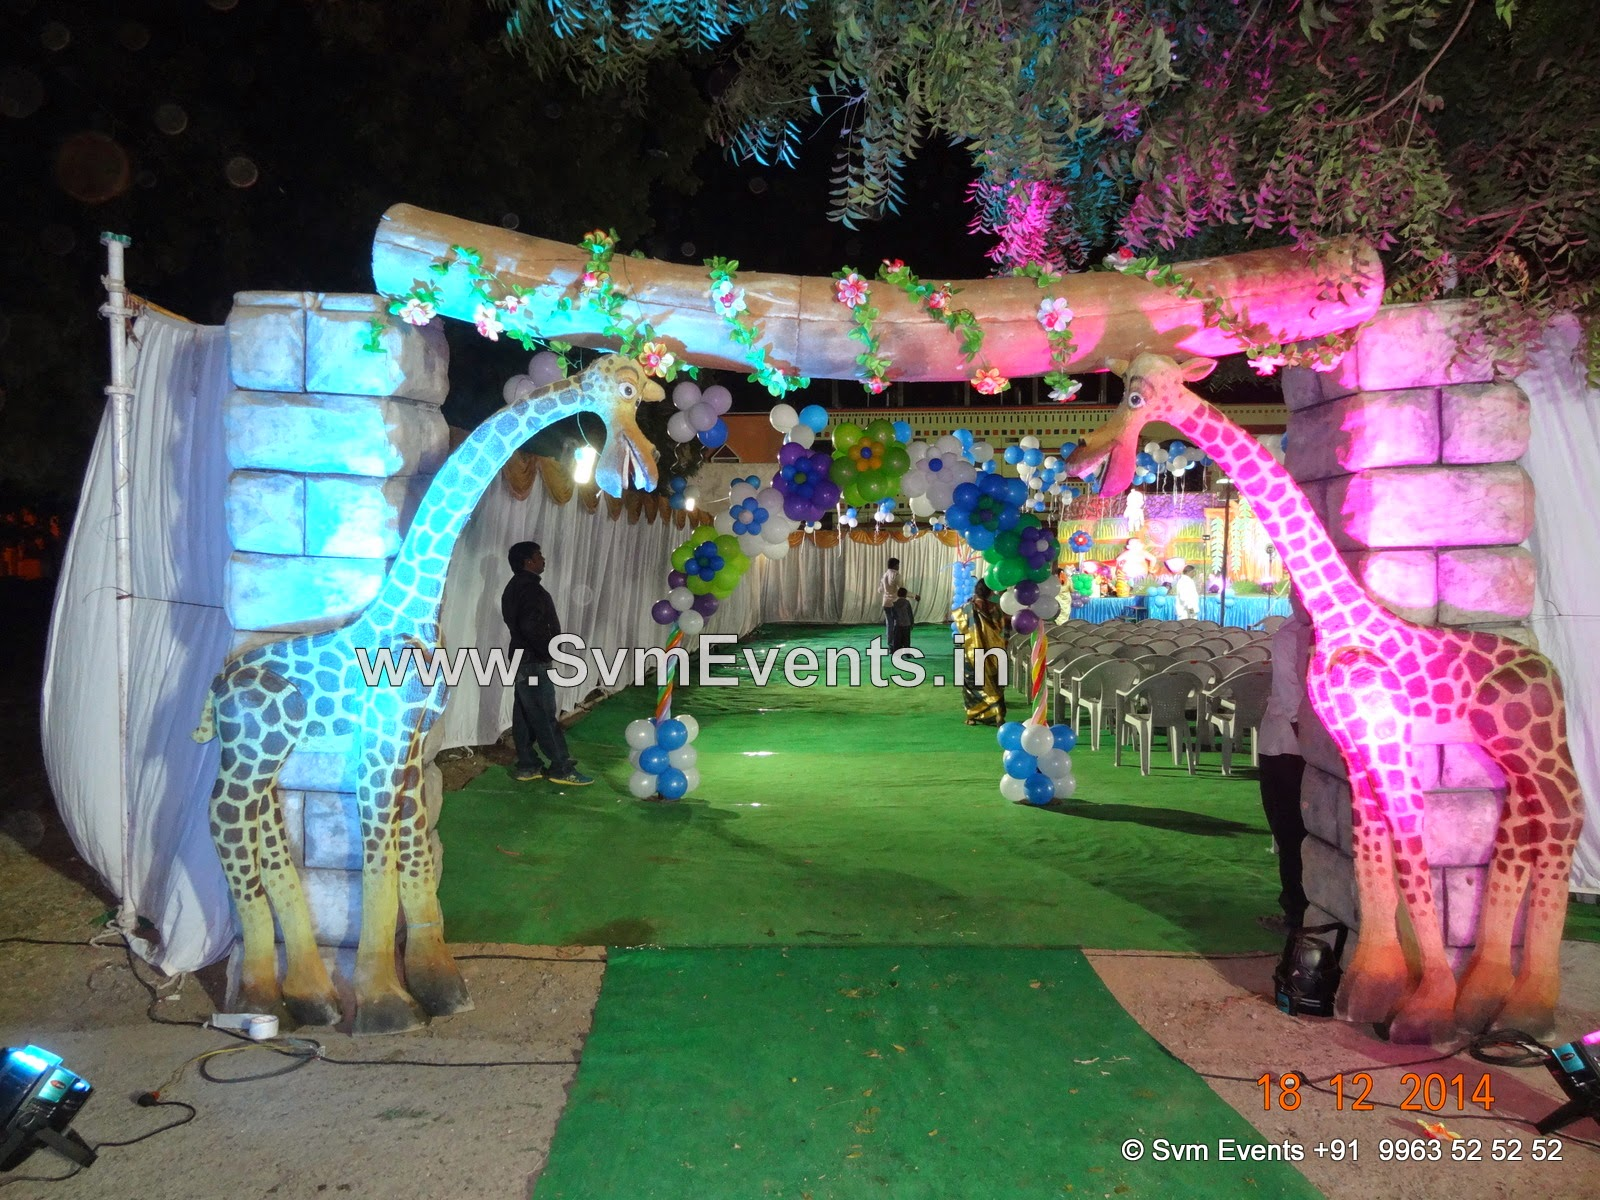 Svm Events 1st Birthday Party Decoration Theme Party Jungle Chota